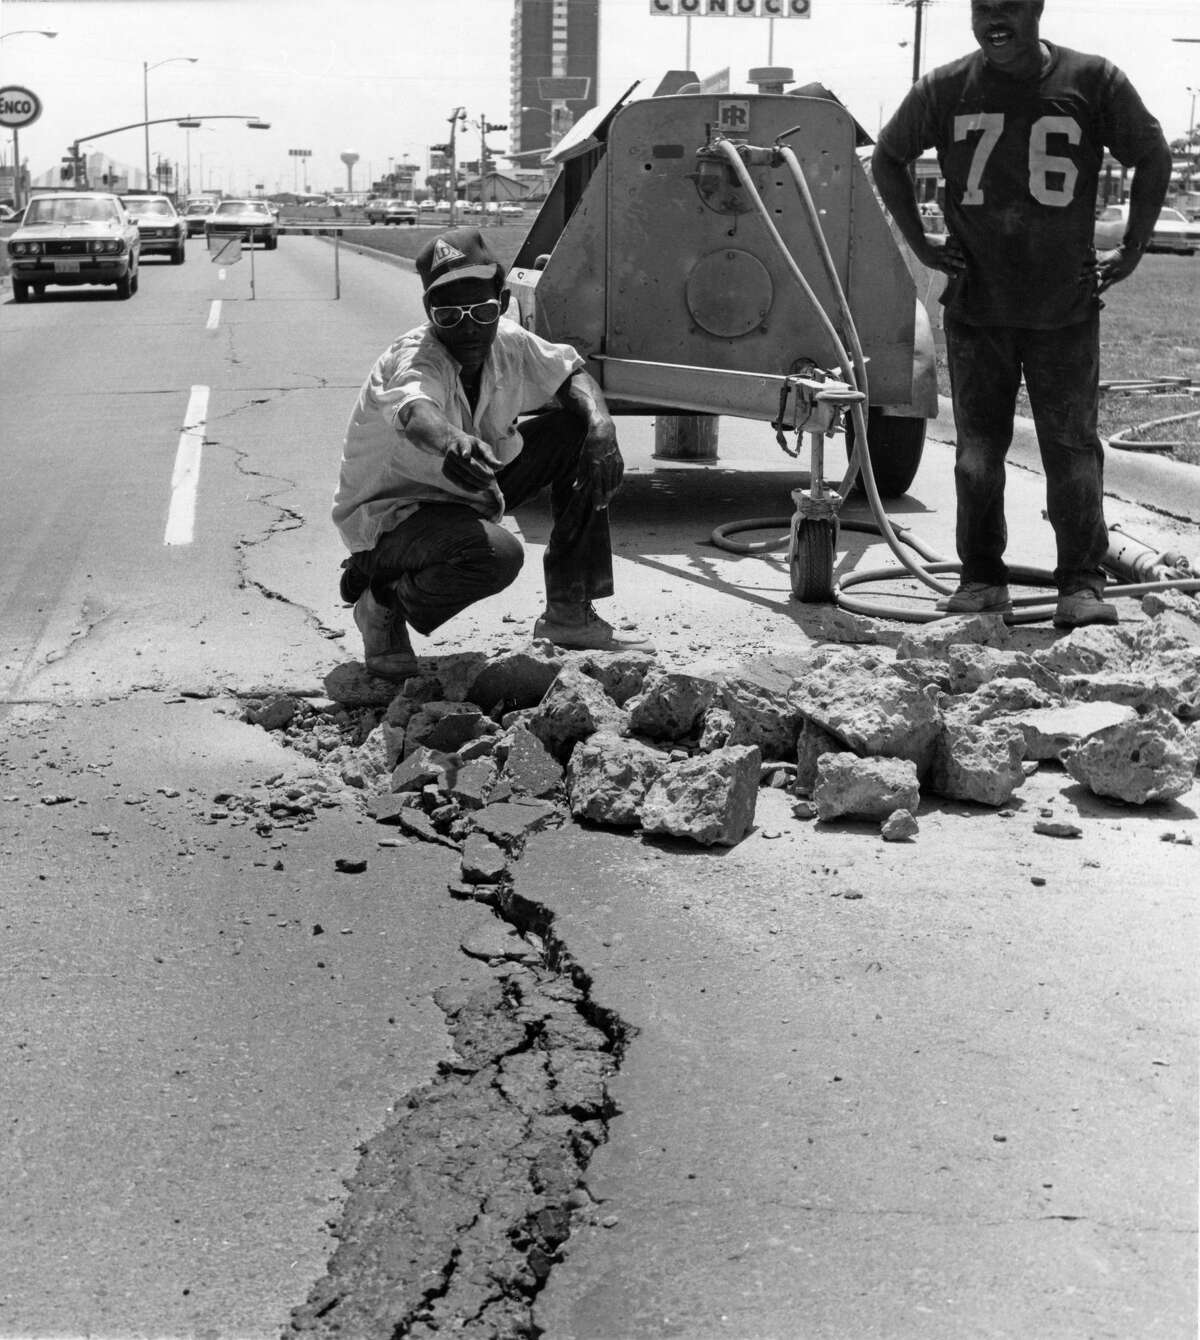 June 1972: This pavement, buckled by heat, is on Bellaire near Fondren. John C. Jones, a hammer operator for the City of Houston, and a crew of workers were on the job repairing it. A spokesman for the City Public Works Department, said widespread buckling by heat usually occurs toward the end of the summer.